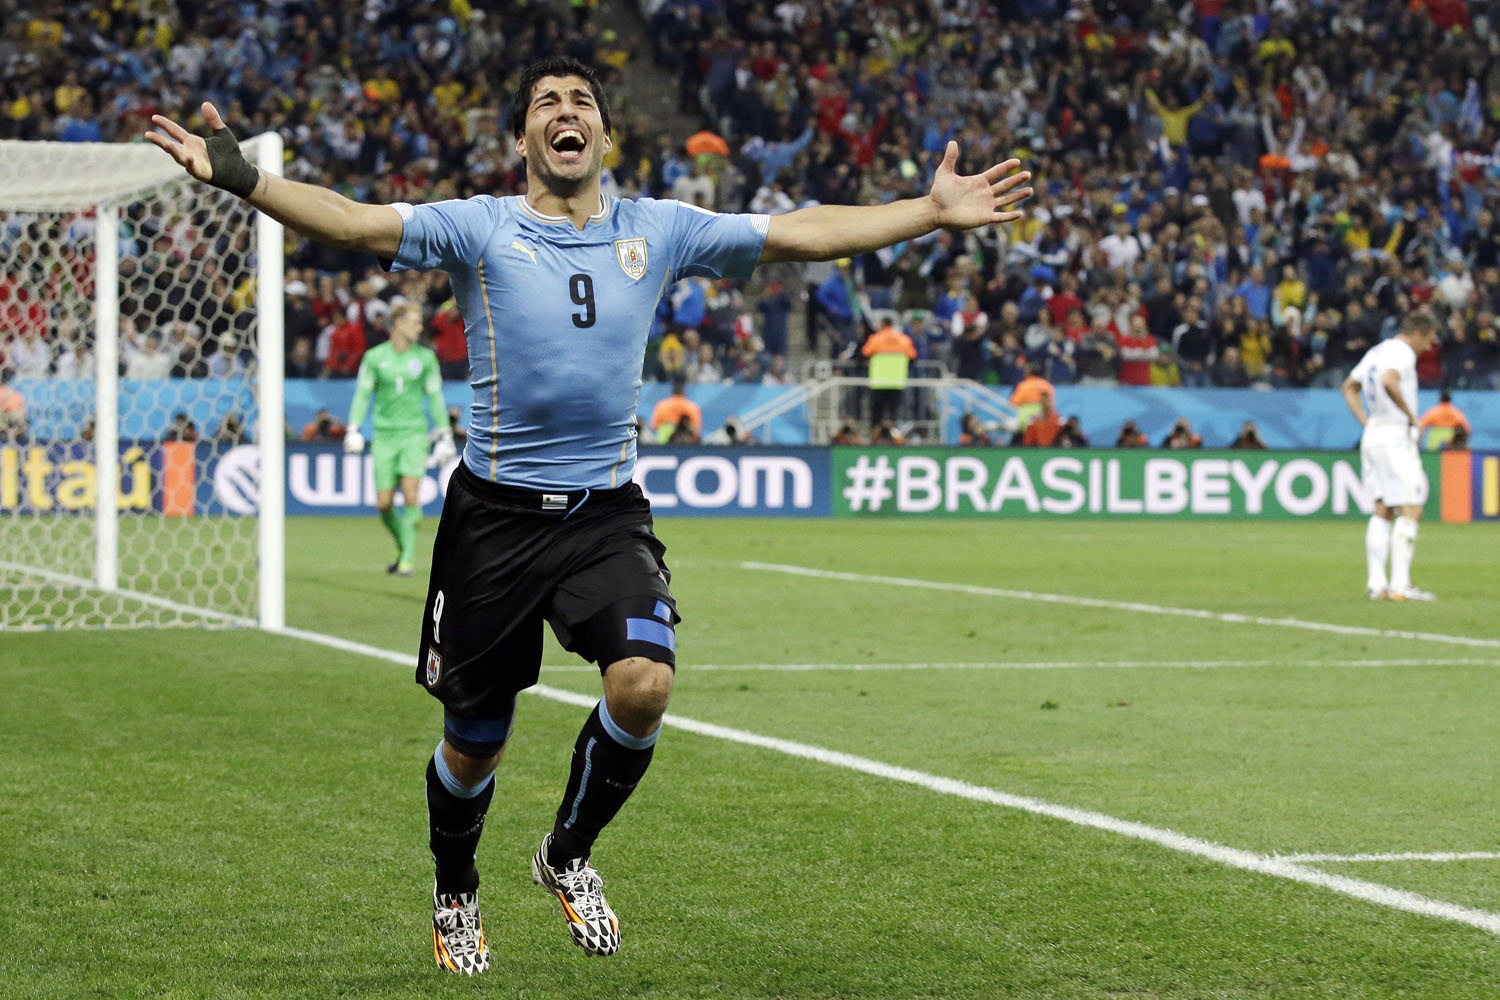 June 19, 2014. Uruguay's Luis Suarez celebrates after scoring his side's second goal during the group D World Cup soccer match between Uruguay and England at the Itaquerao Stadium in Sao Paulo, Brazil.